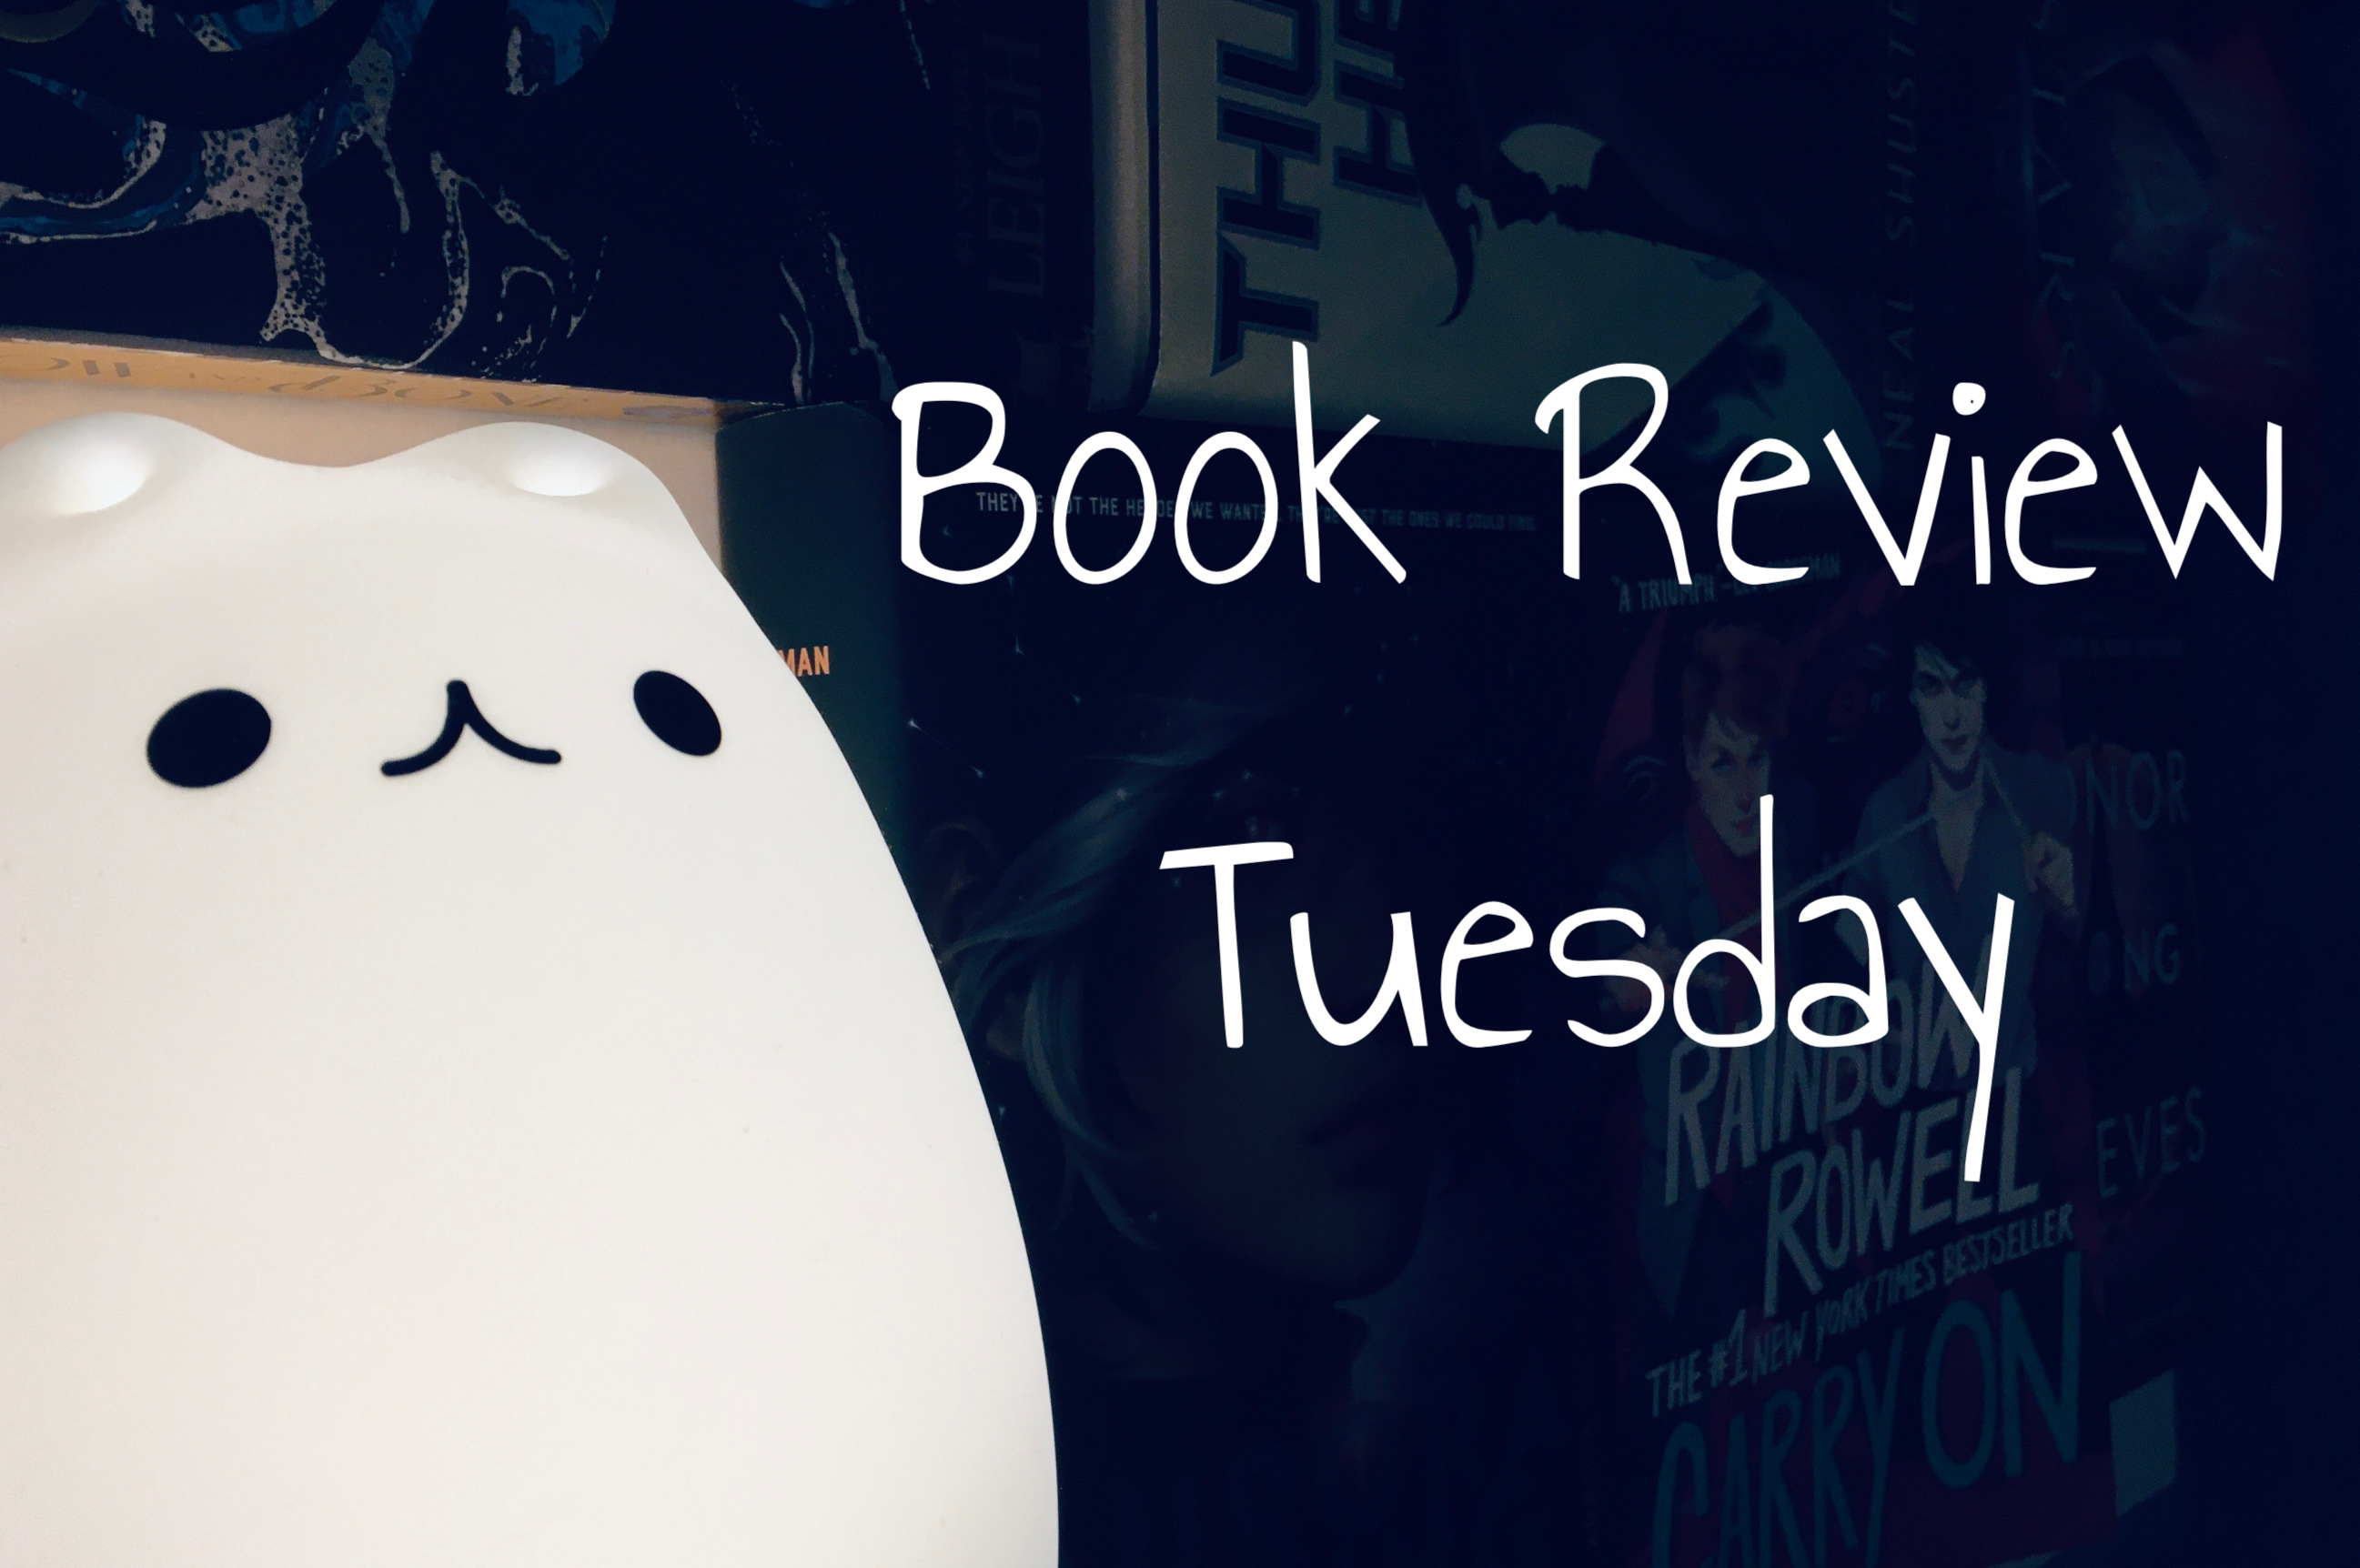 Book review tuesday header.jpg